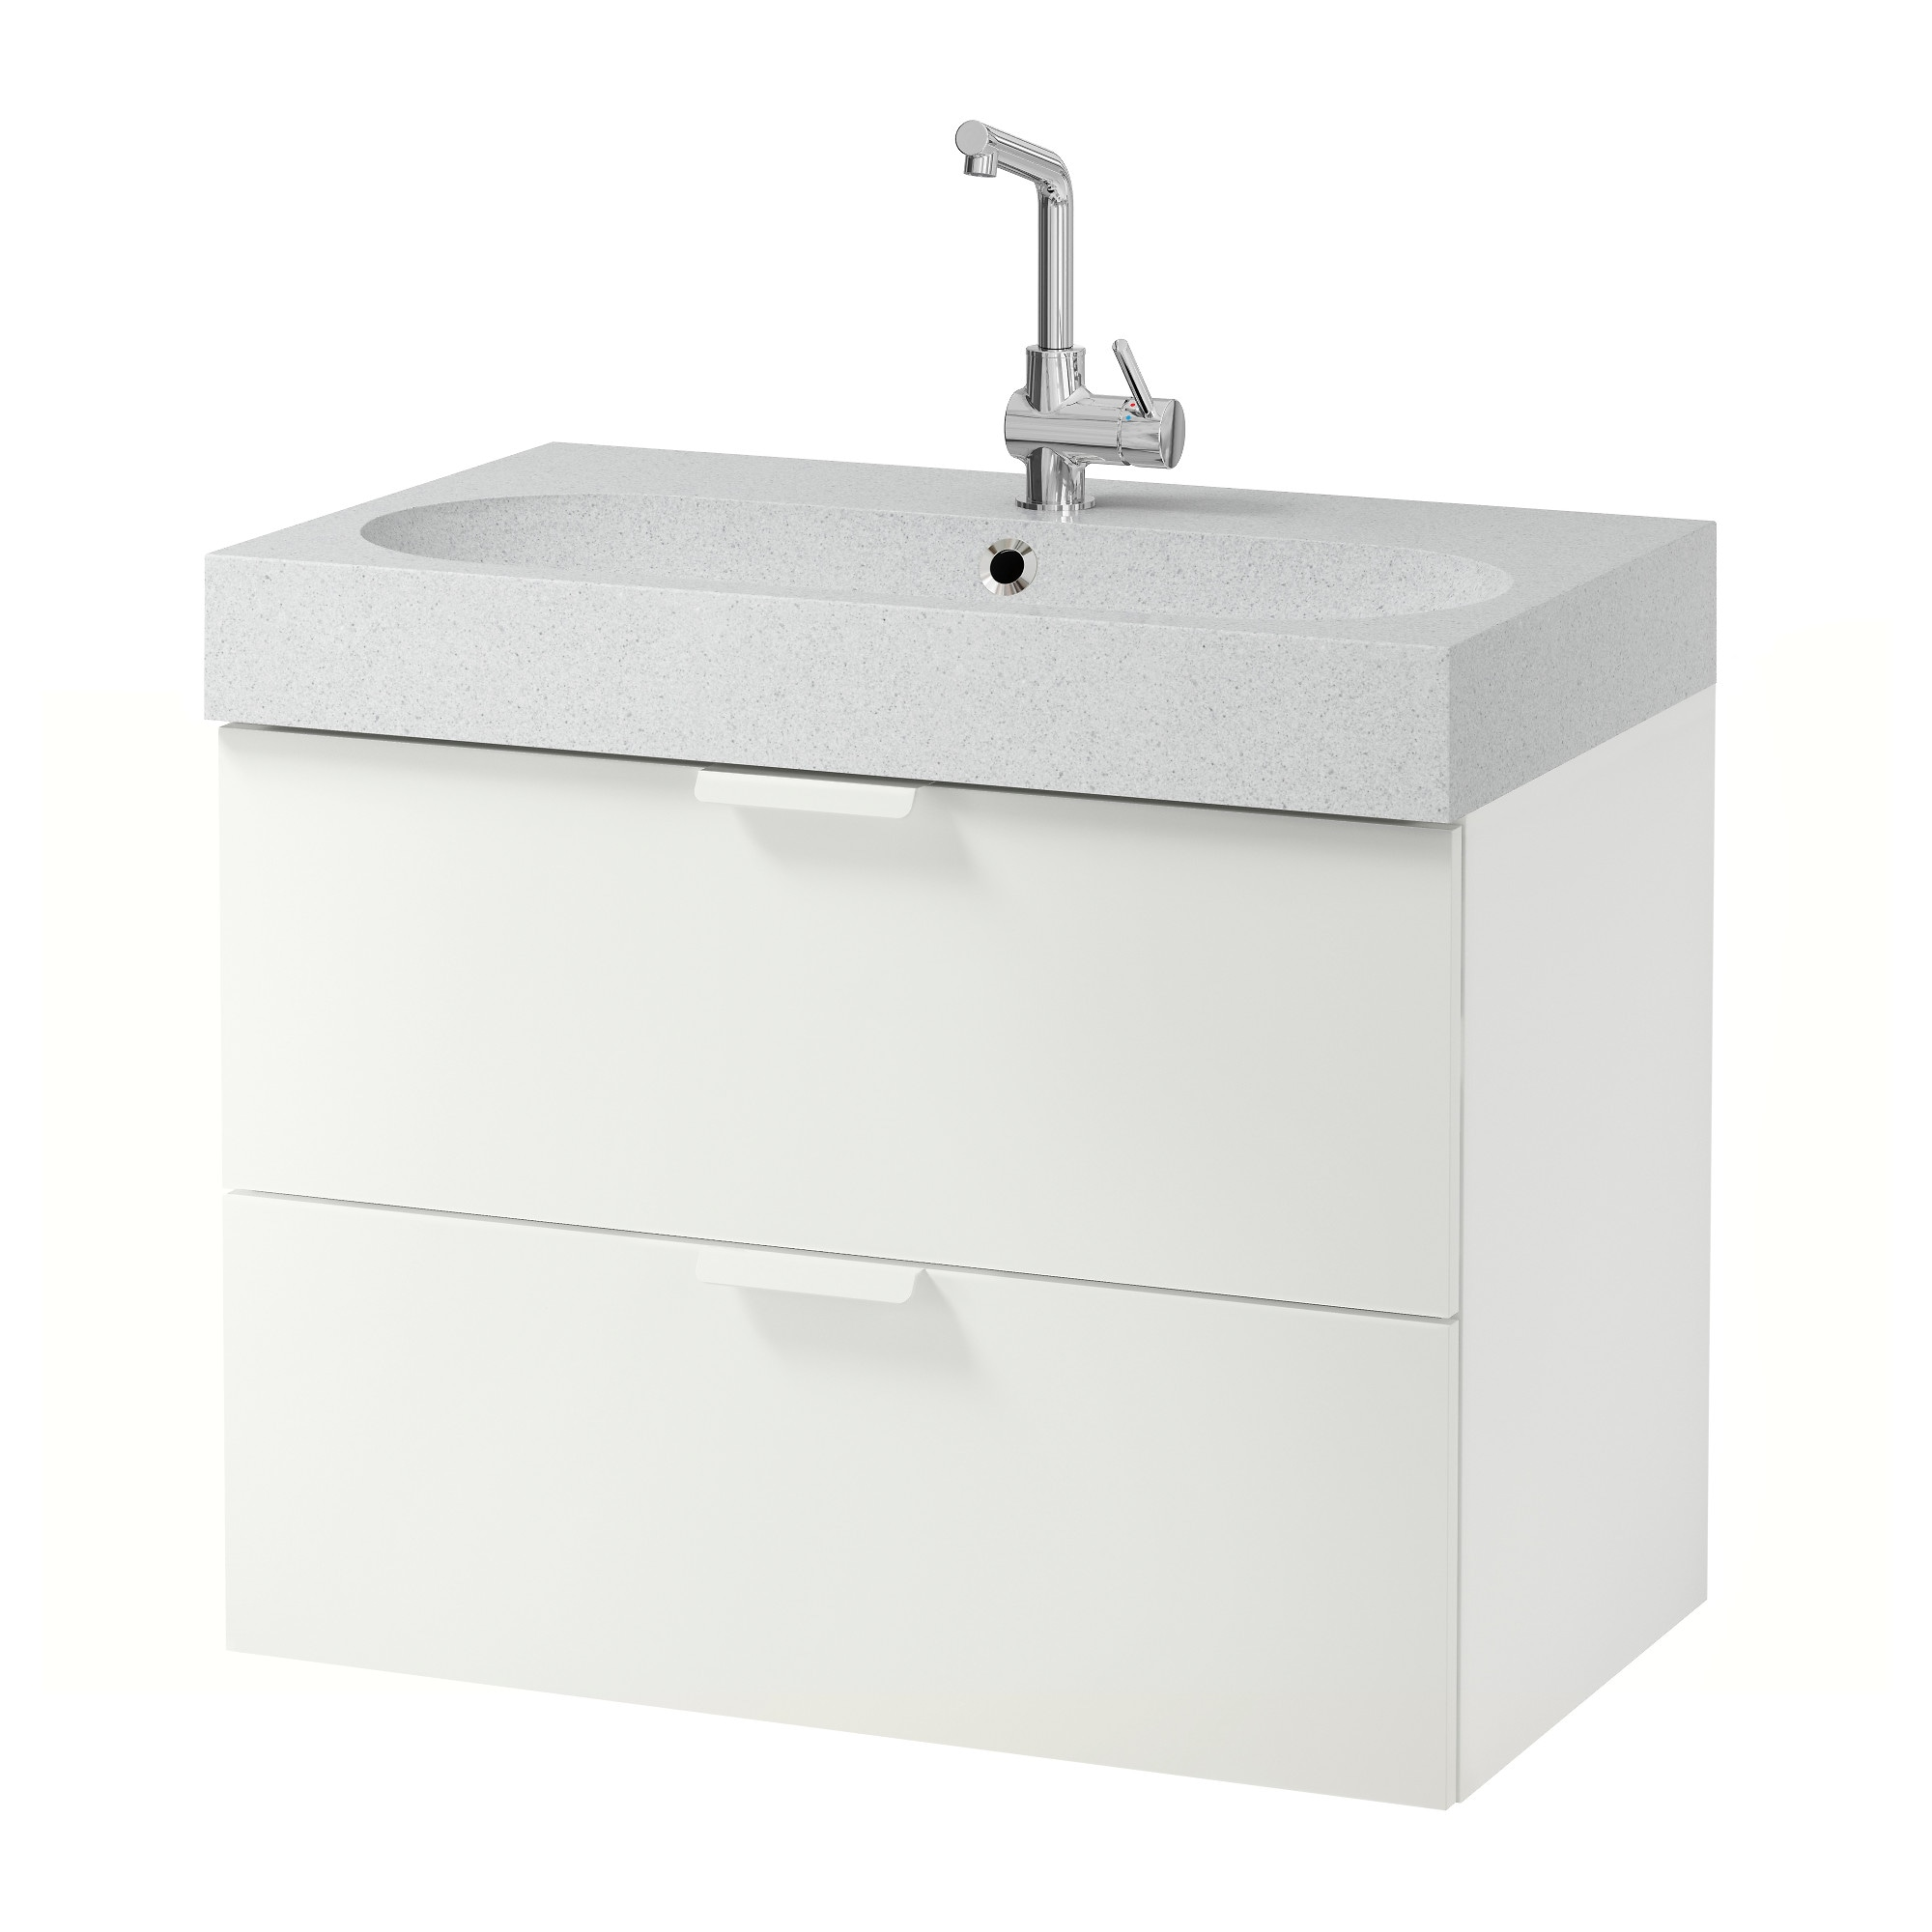 Lavabo meuble for Mueble lavabo pedestal ikea